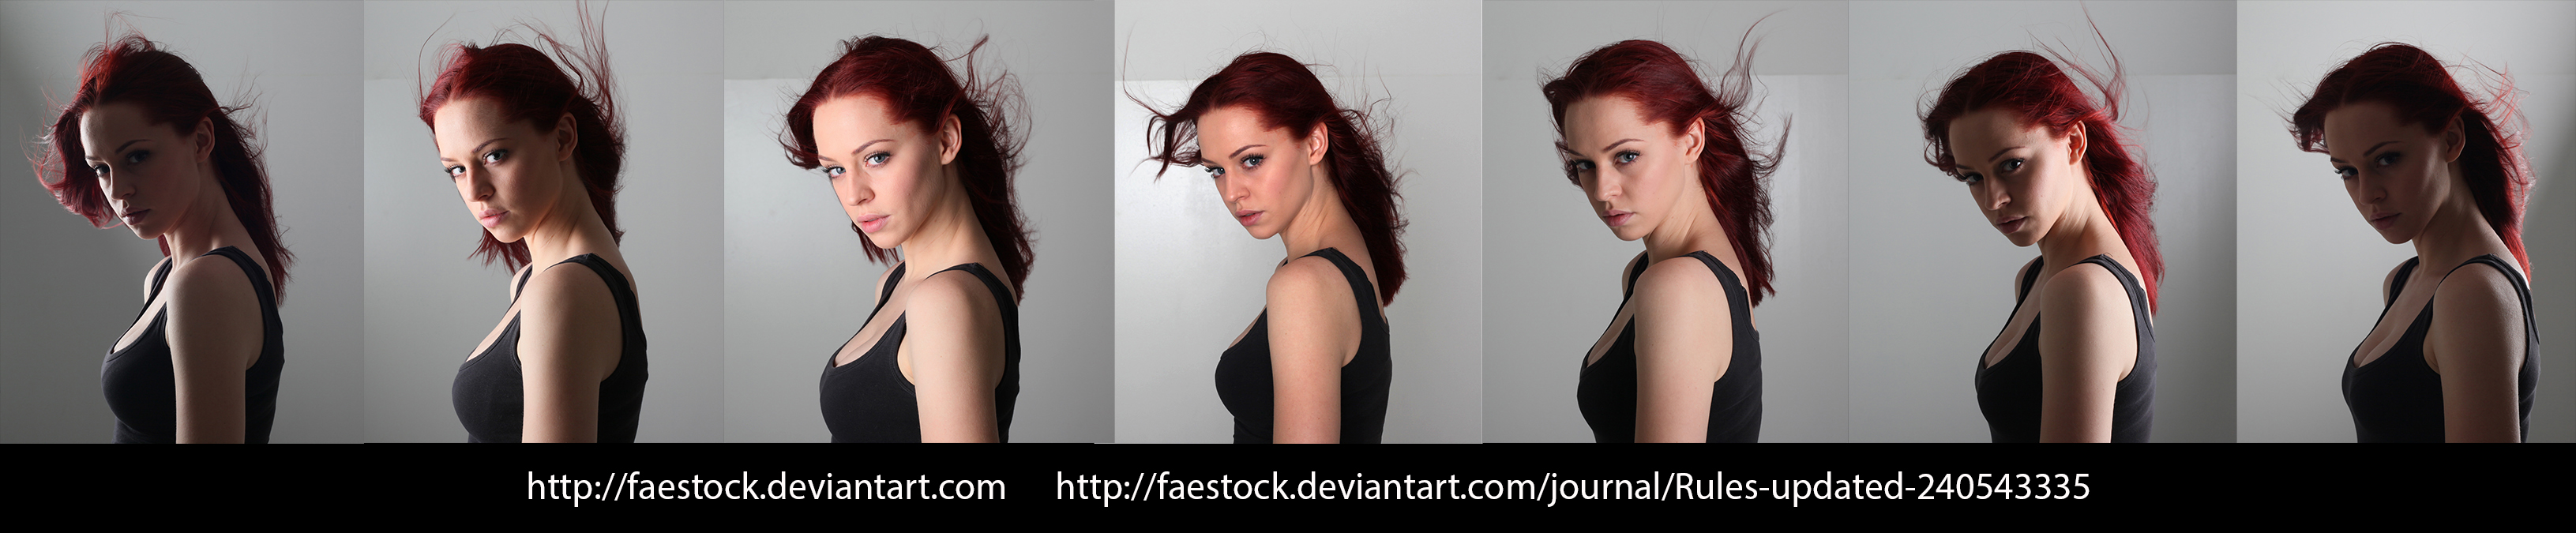 Face lighting reference 9 by faestock